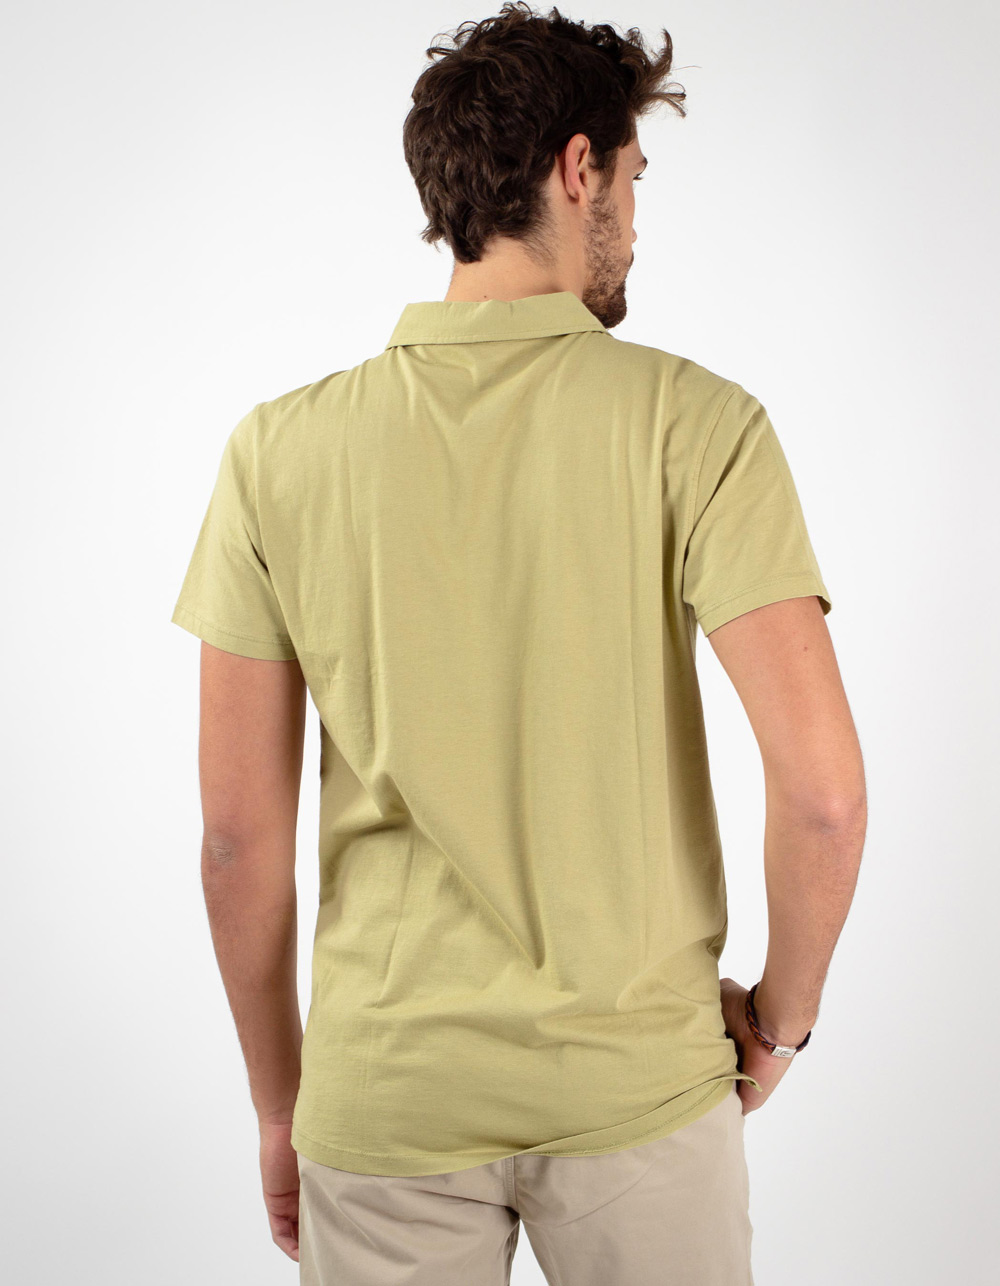 Green pocket polo shirt - Backside